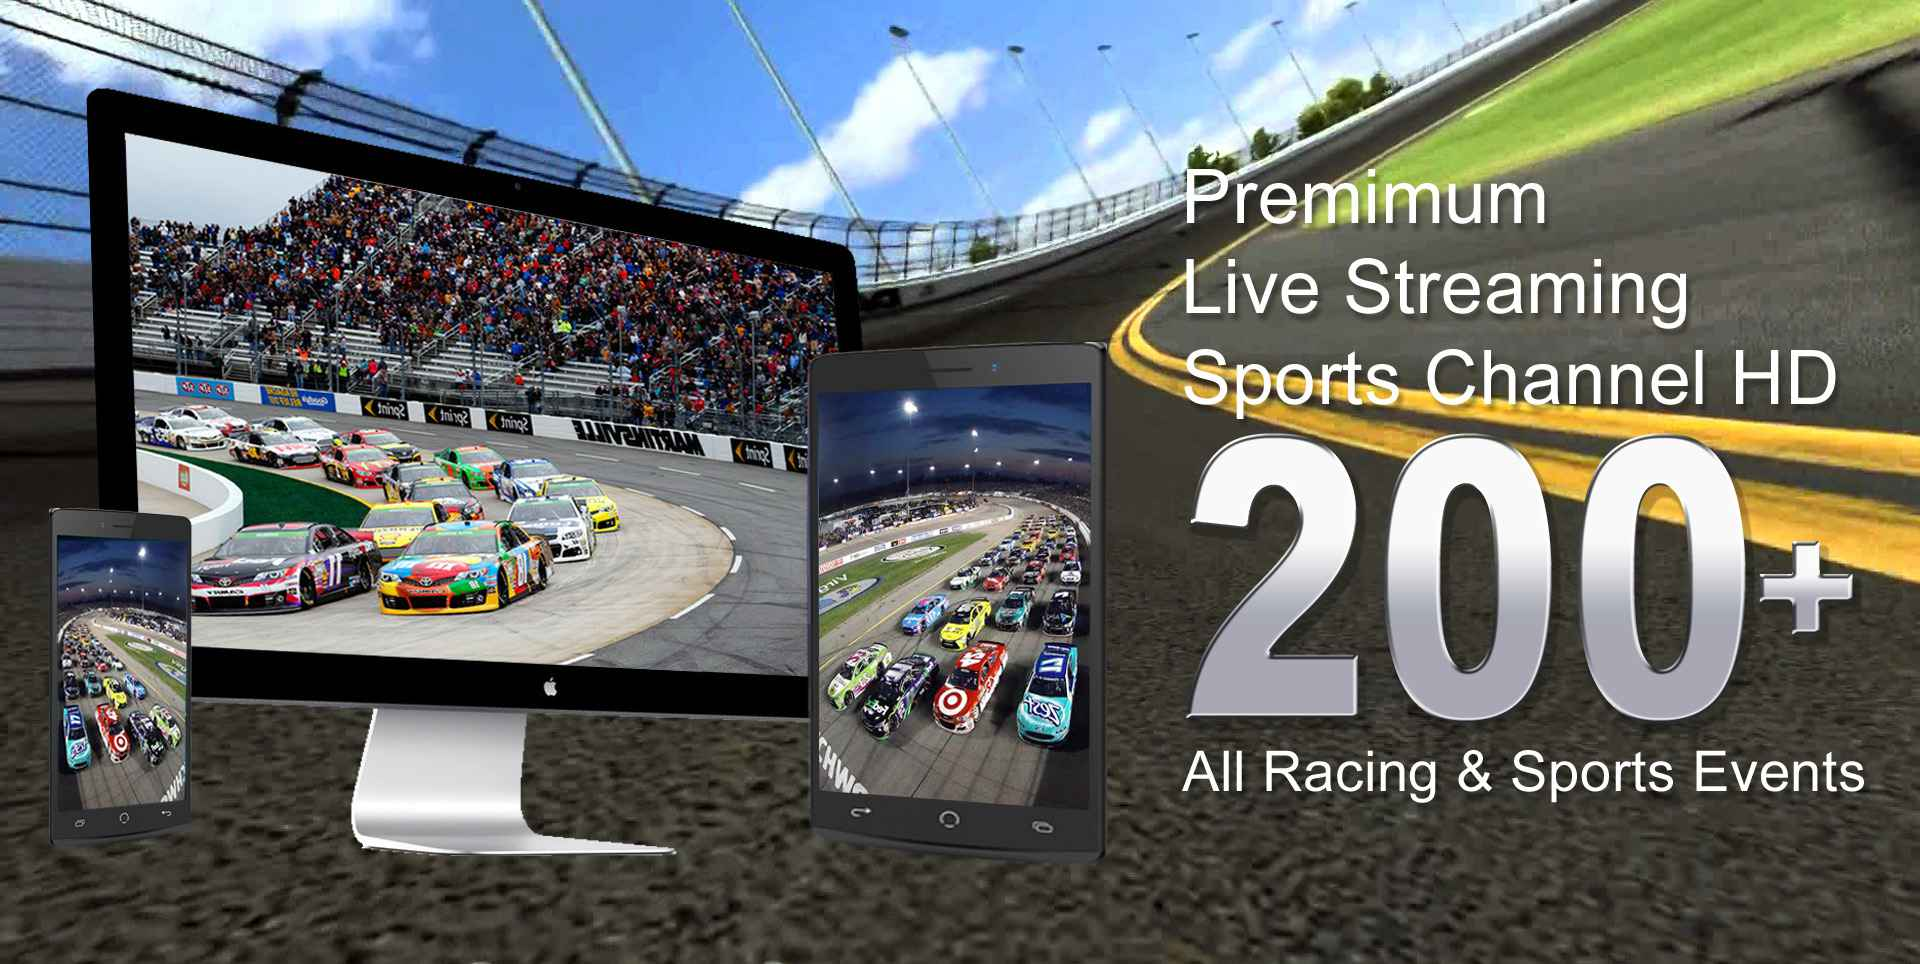 nascar-cup-series-2021-schedule-revealed